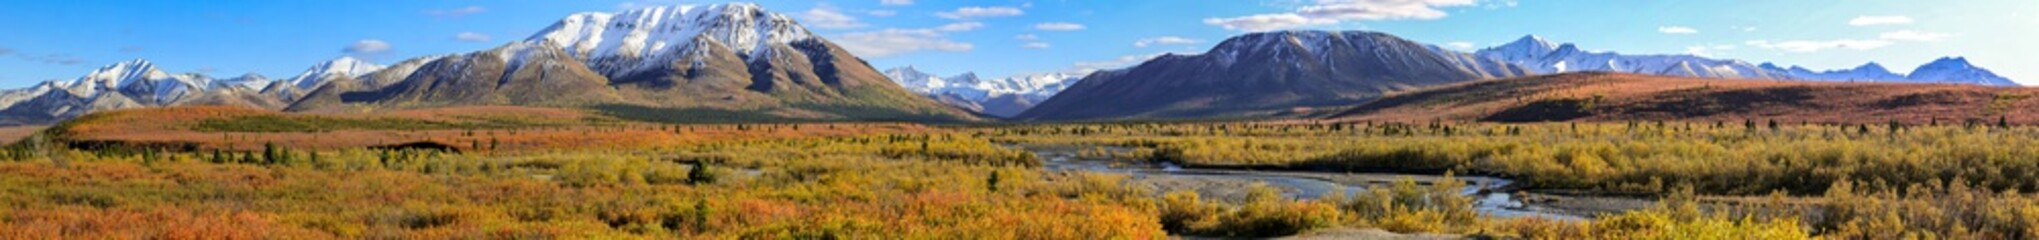 Panorama Autumn in Denali National Park, Alaska